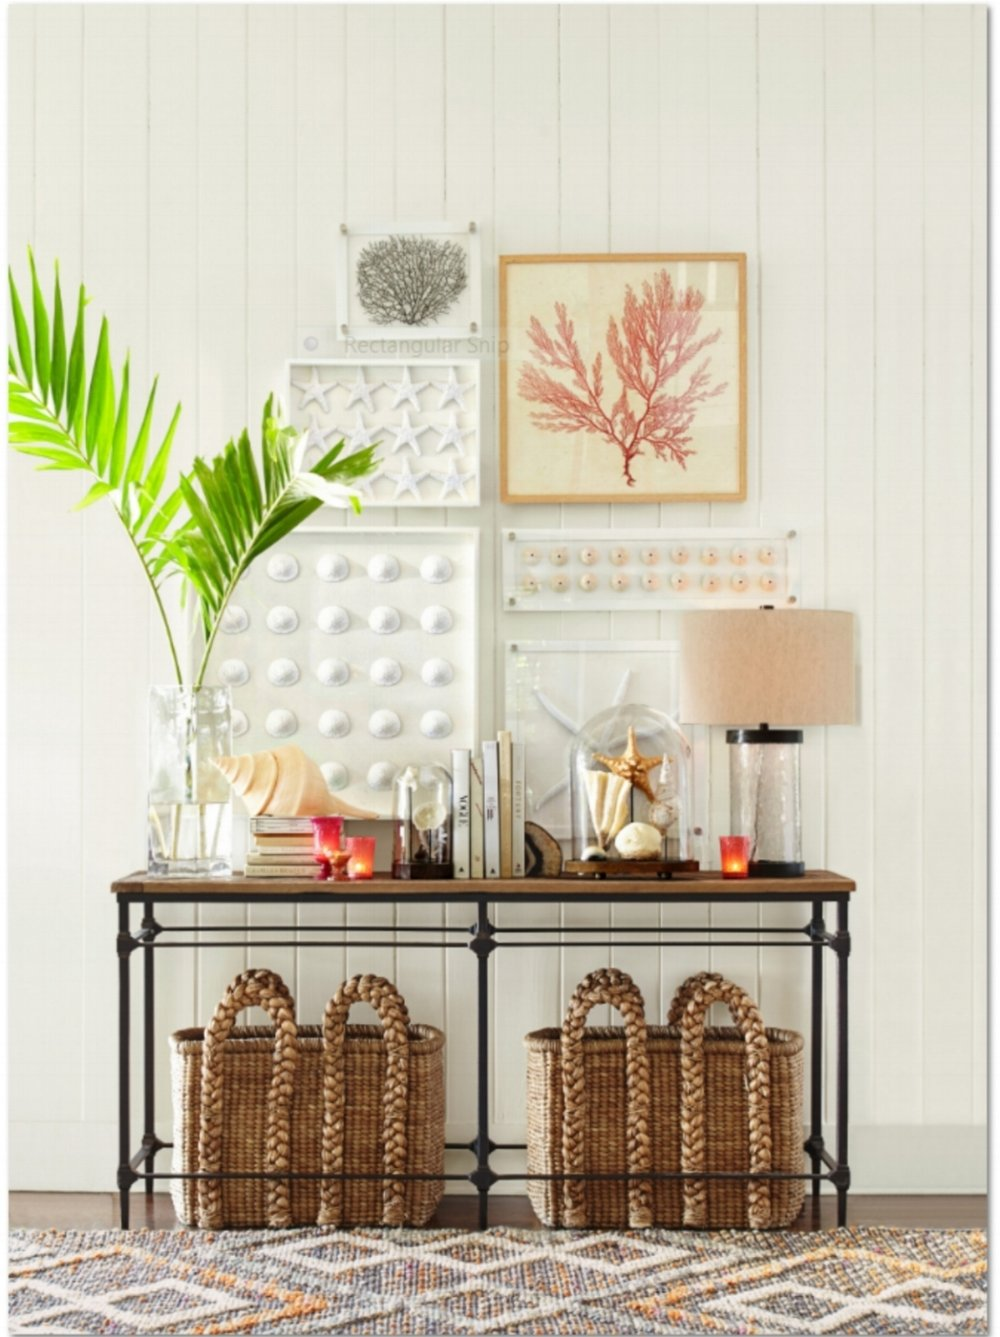 A reclaimed wood console table is the perfect base for building a collection in an entry or family room that reflects the owner of the home. Artwork, greenery, books, lamp and natural touches including natural seagrass beachcomber baskets that are beautiful and perfect for storage. All anchored by a handwoven diamond-wrapped jute rug. Photo courtesy of Pottery Barn.